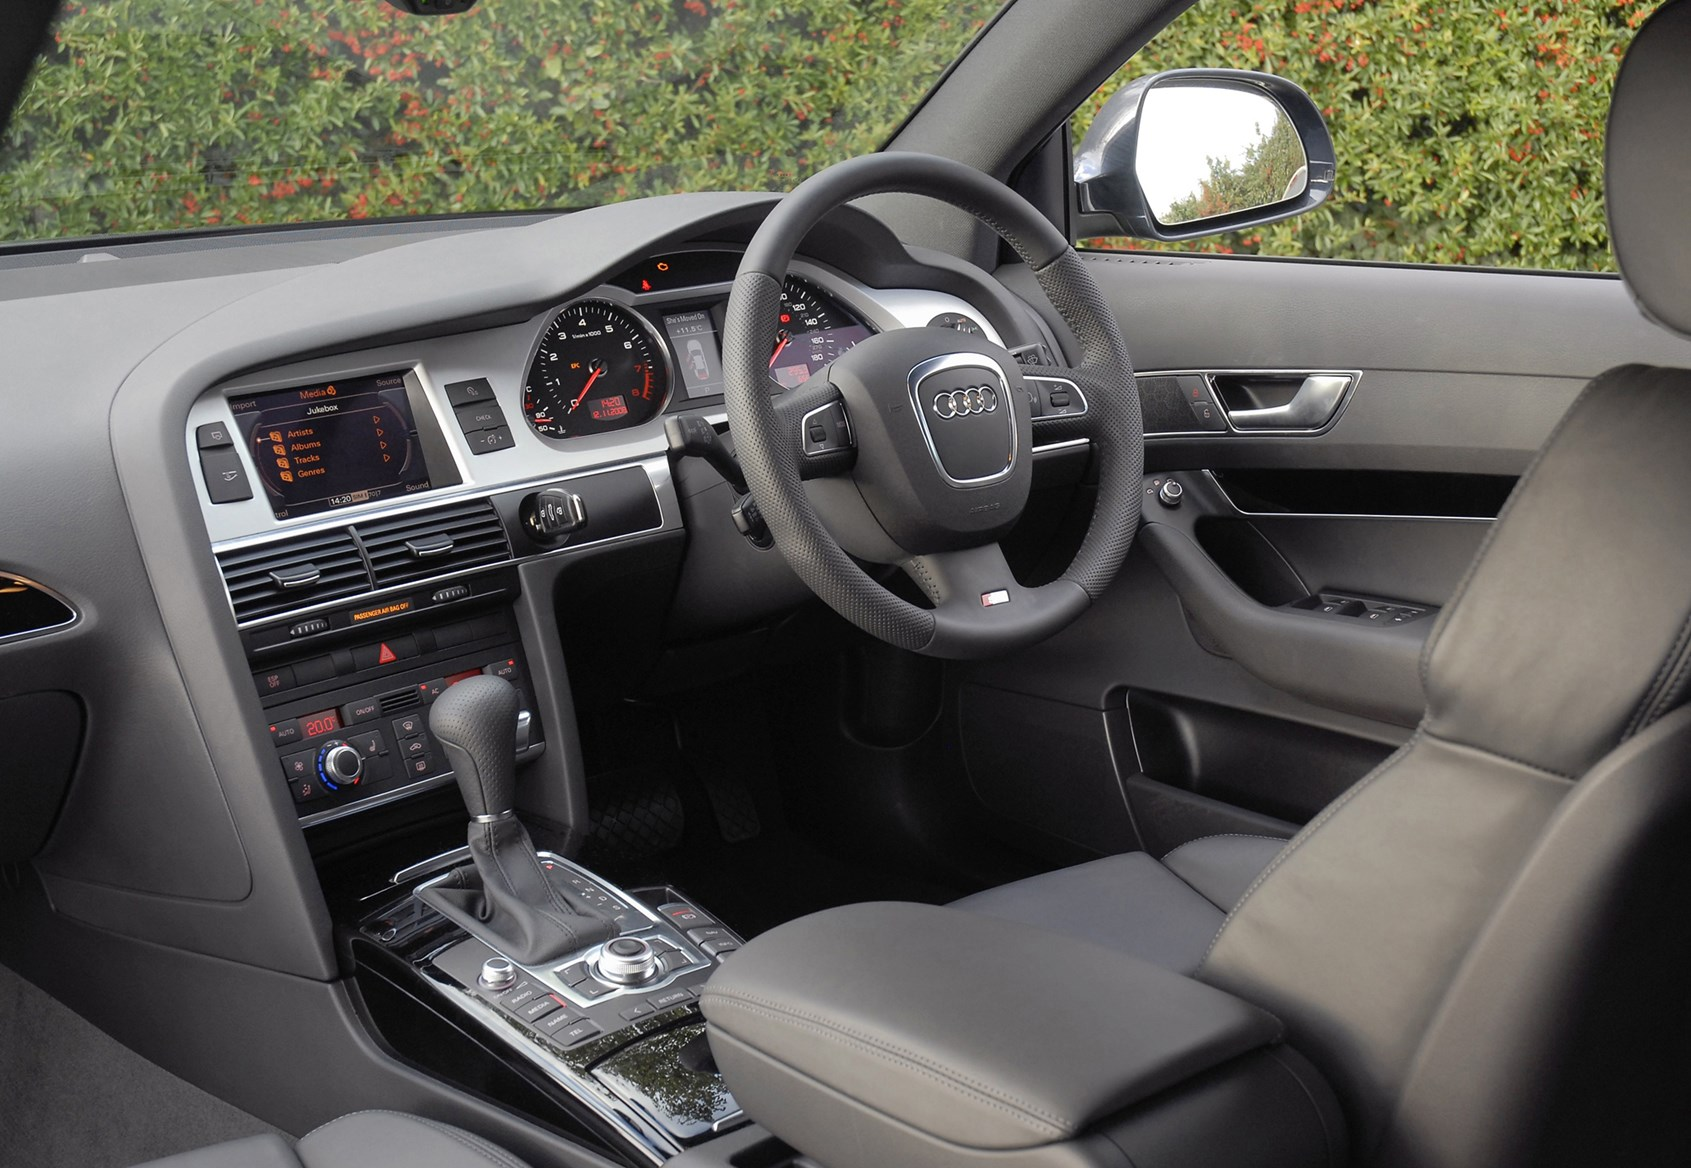 Audi A6 Saloon 2004 2011 Driving & Performance